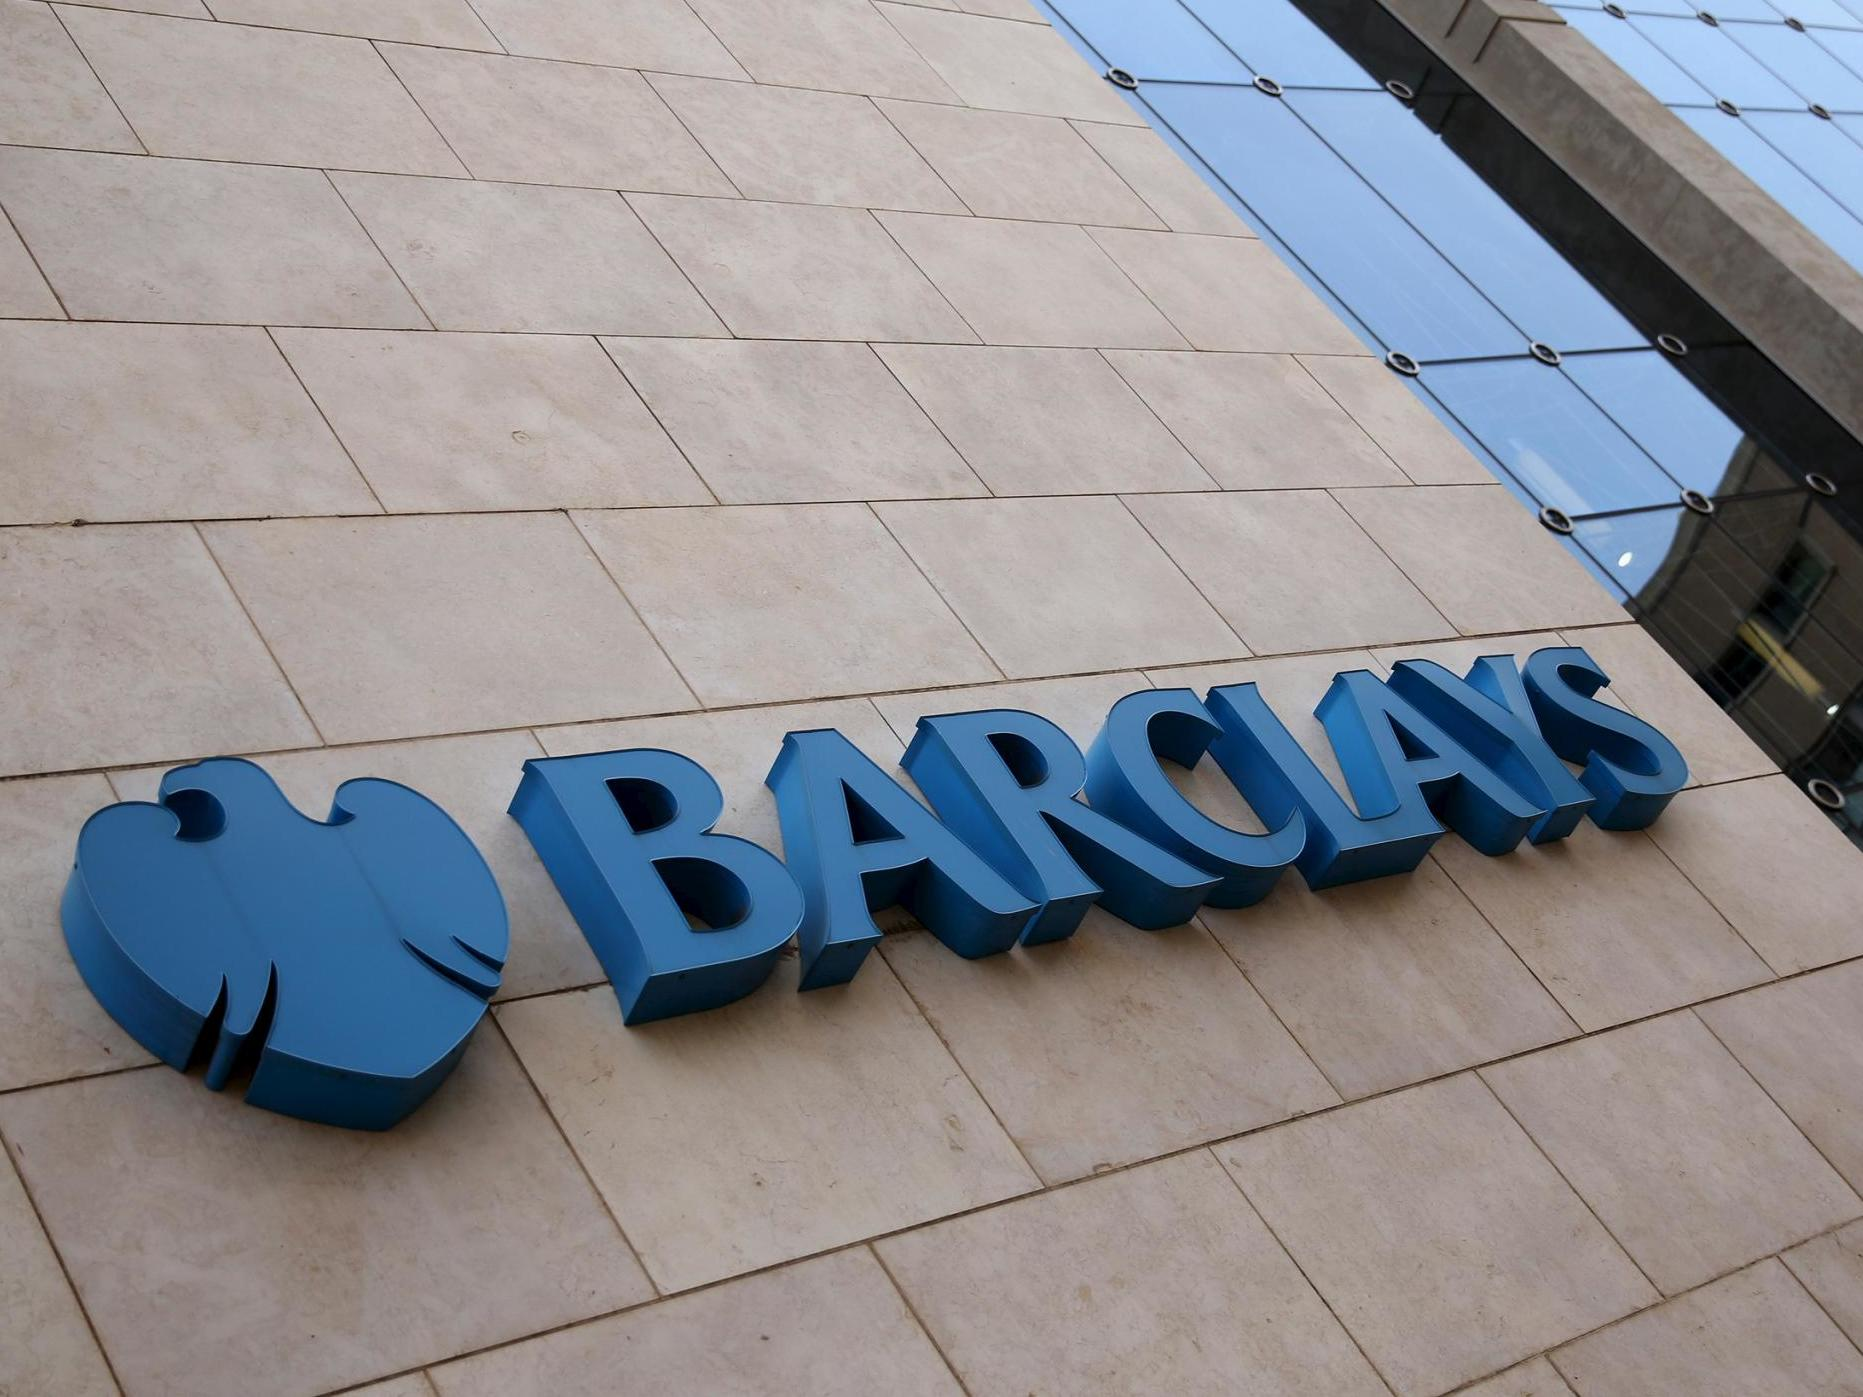 Barclays scraps 'Big Brother' tracking software after backlash